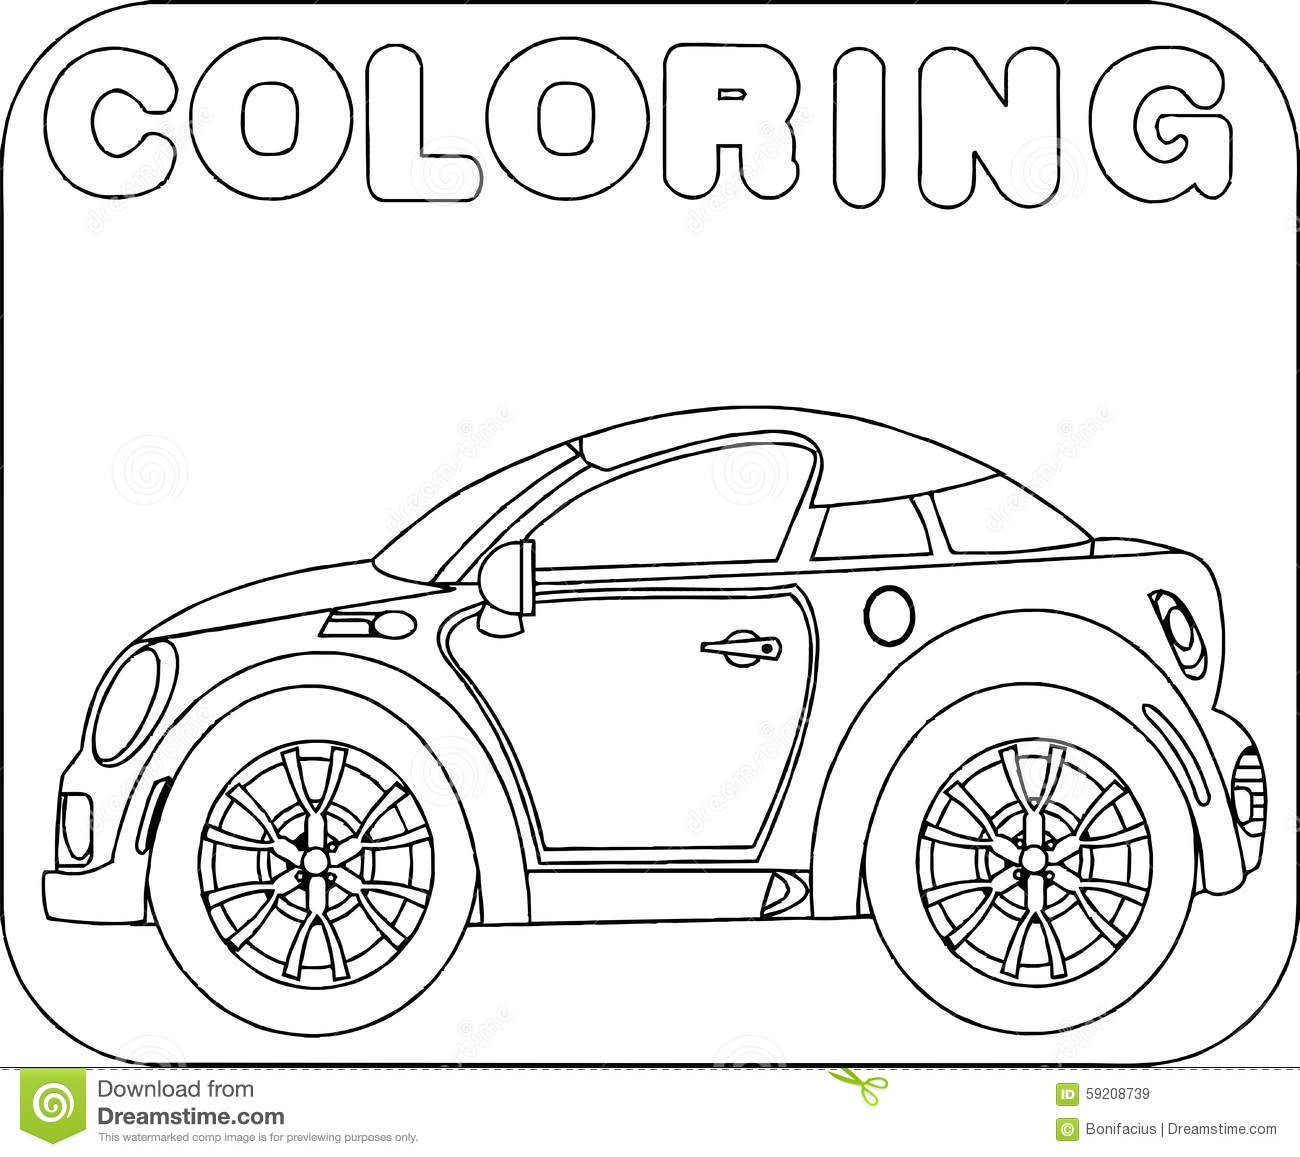 Coloring Sport Car Cartoon Stock Vector